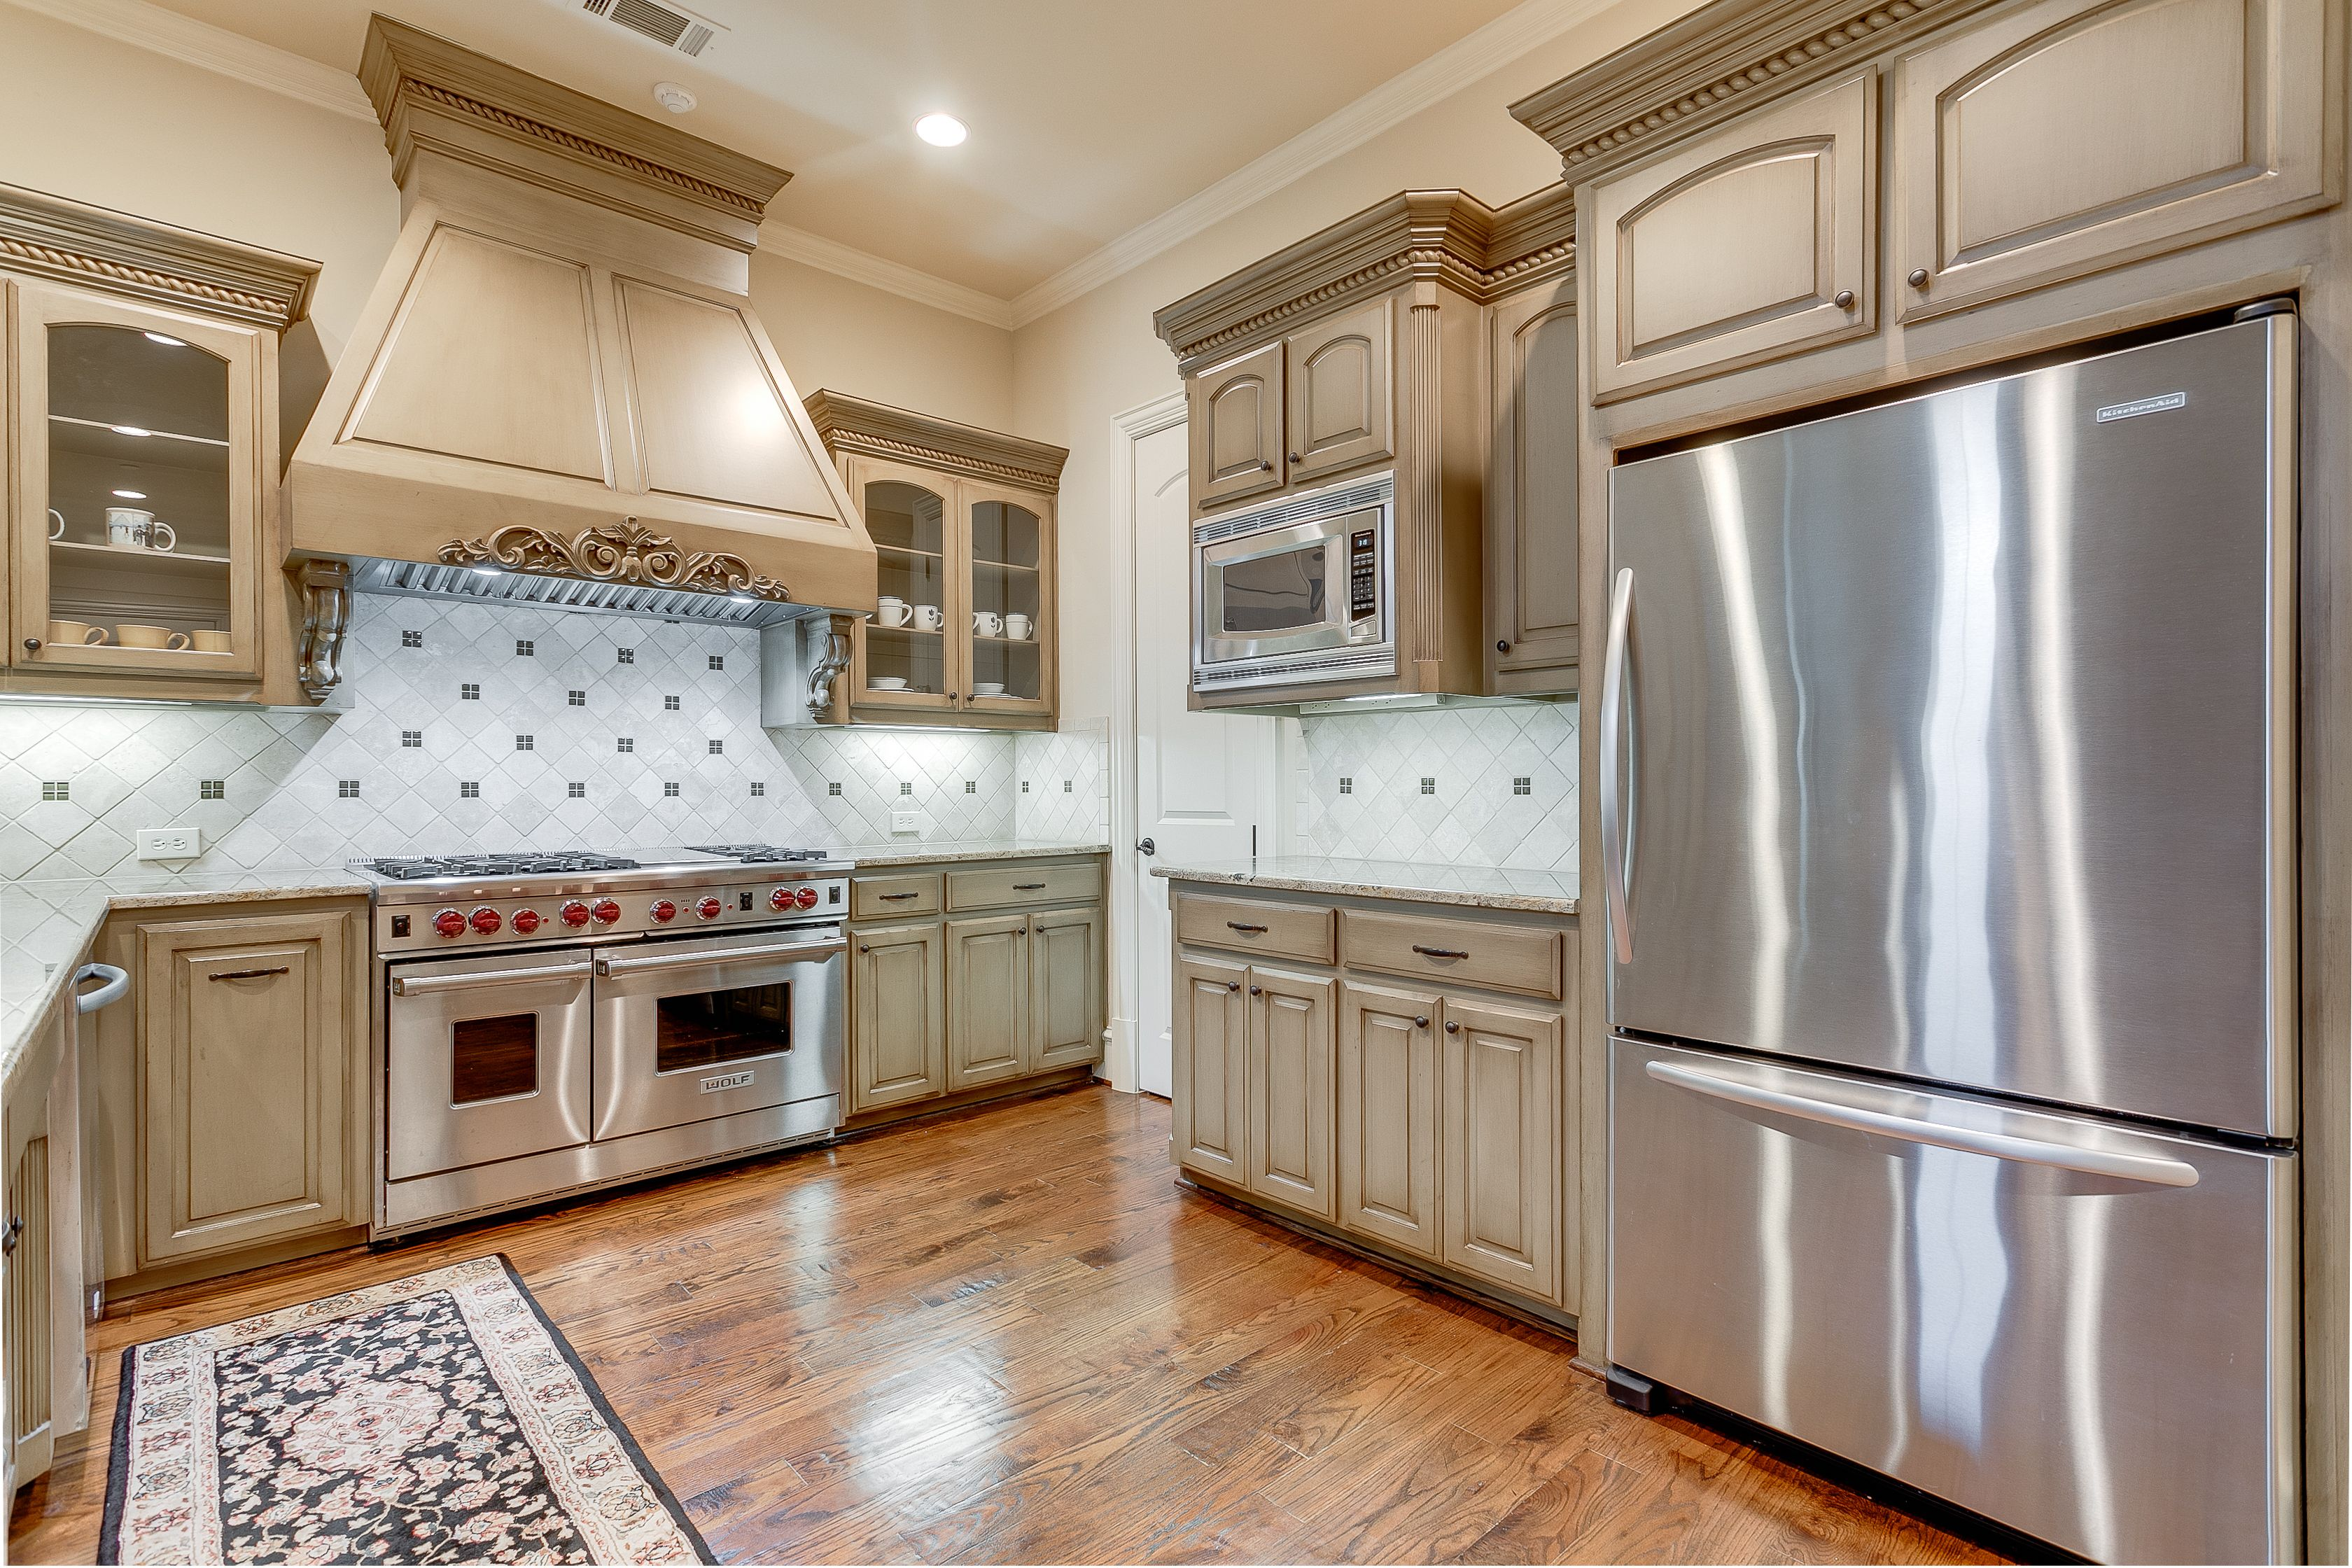 Kitchen Has Stainless Appliances Like New 6 Burner Gas Range With Grill Granite Countertops And Beautiful Custo Kitchen Custom Cabinetry Dallas Real Estate